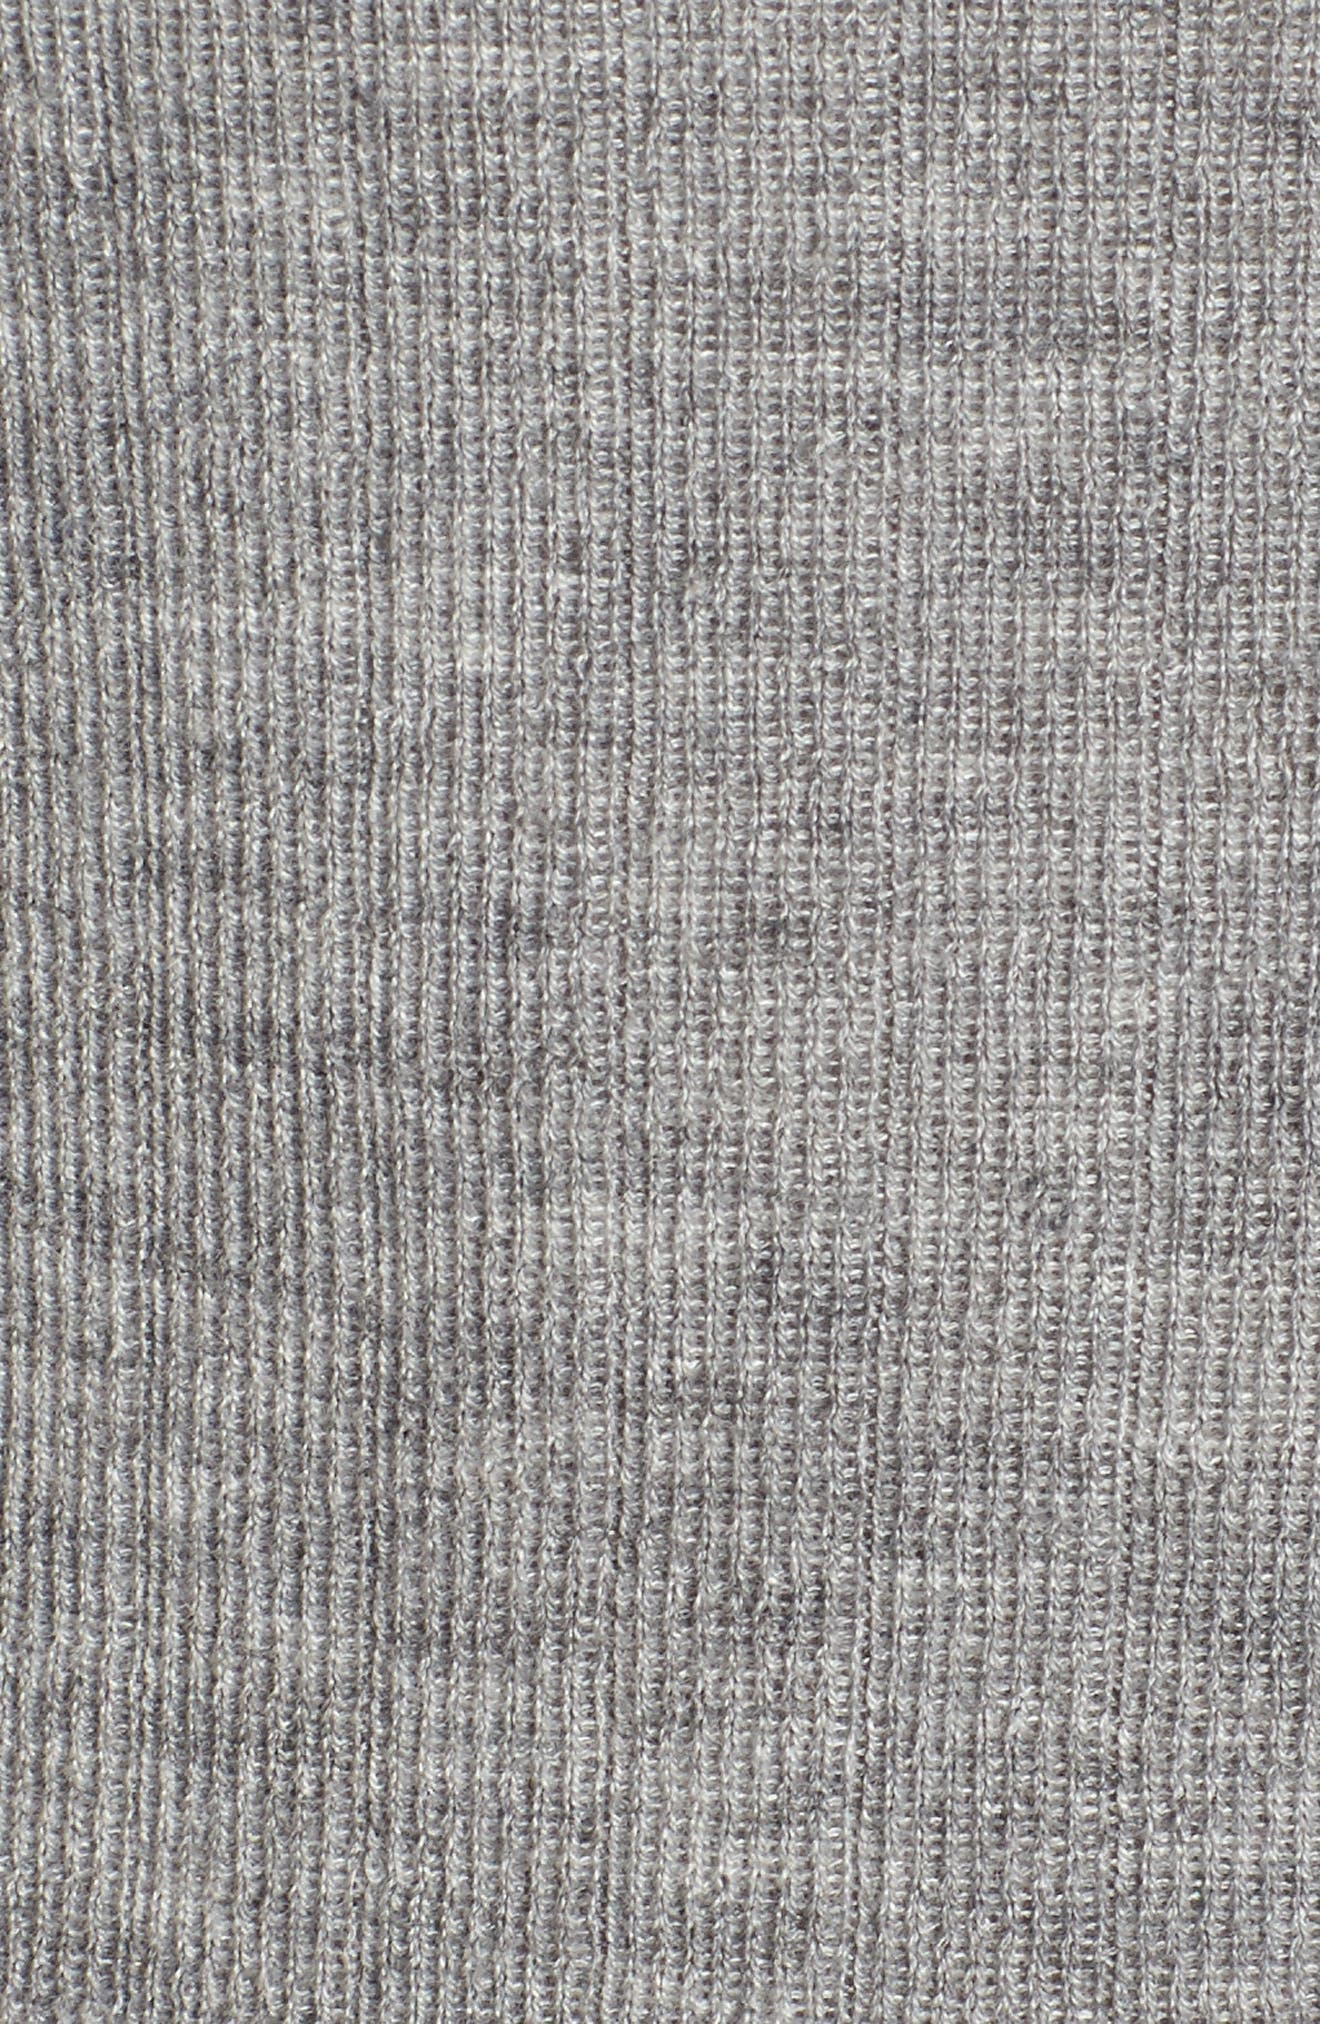 Ribbed Cashmere Sweater,                             Alternate thumbnail 5, color,                             030